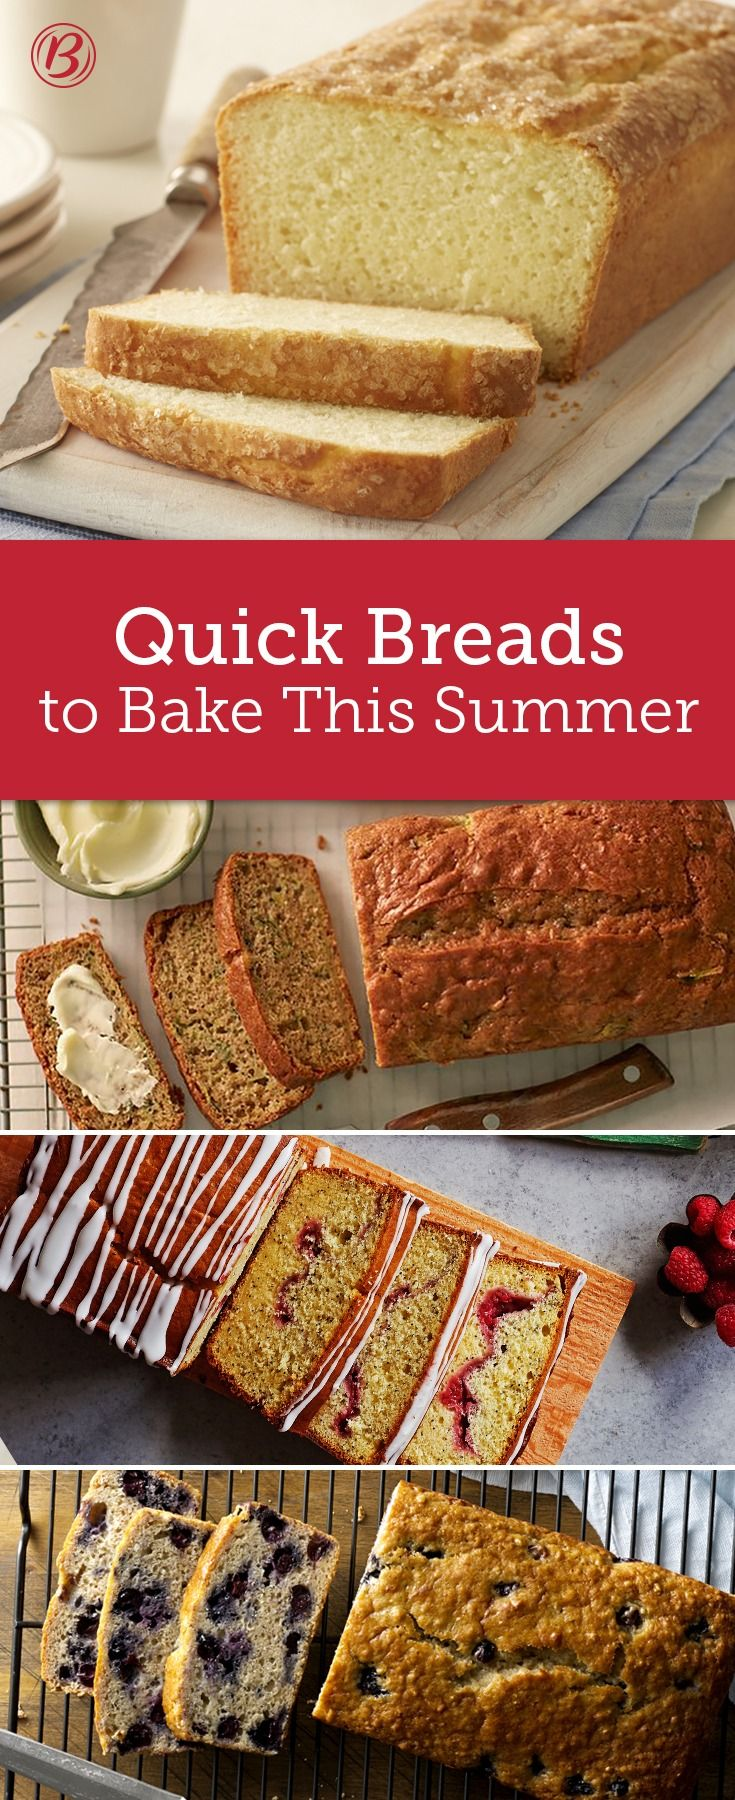 These quick breads are easy to make and packed full of summer's best ingredients. We've got banana blueberry bread and an easy lemon loaf—plus, every quick bread in between!